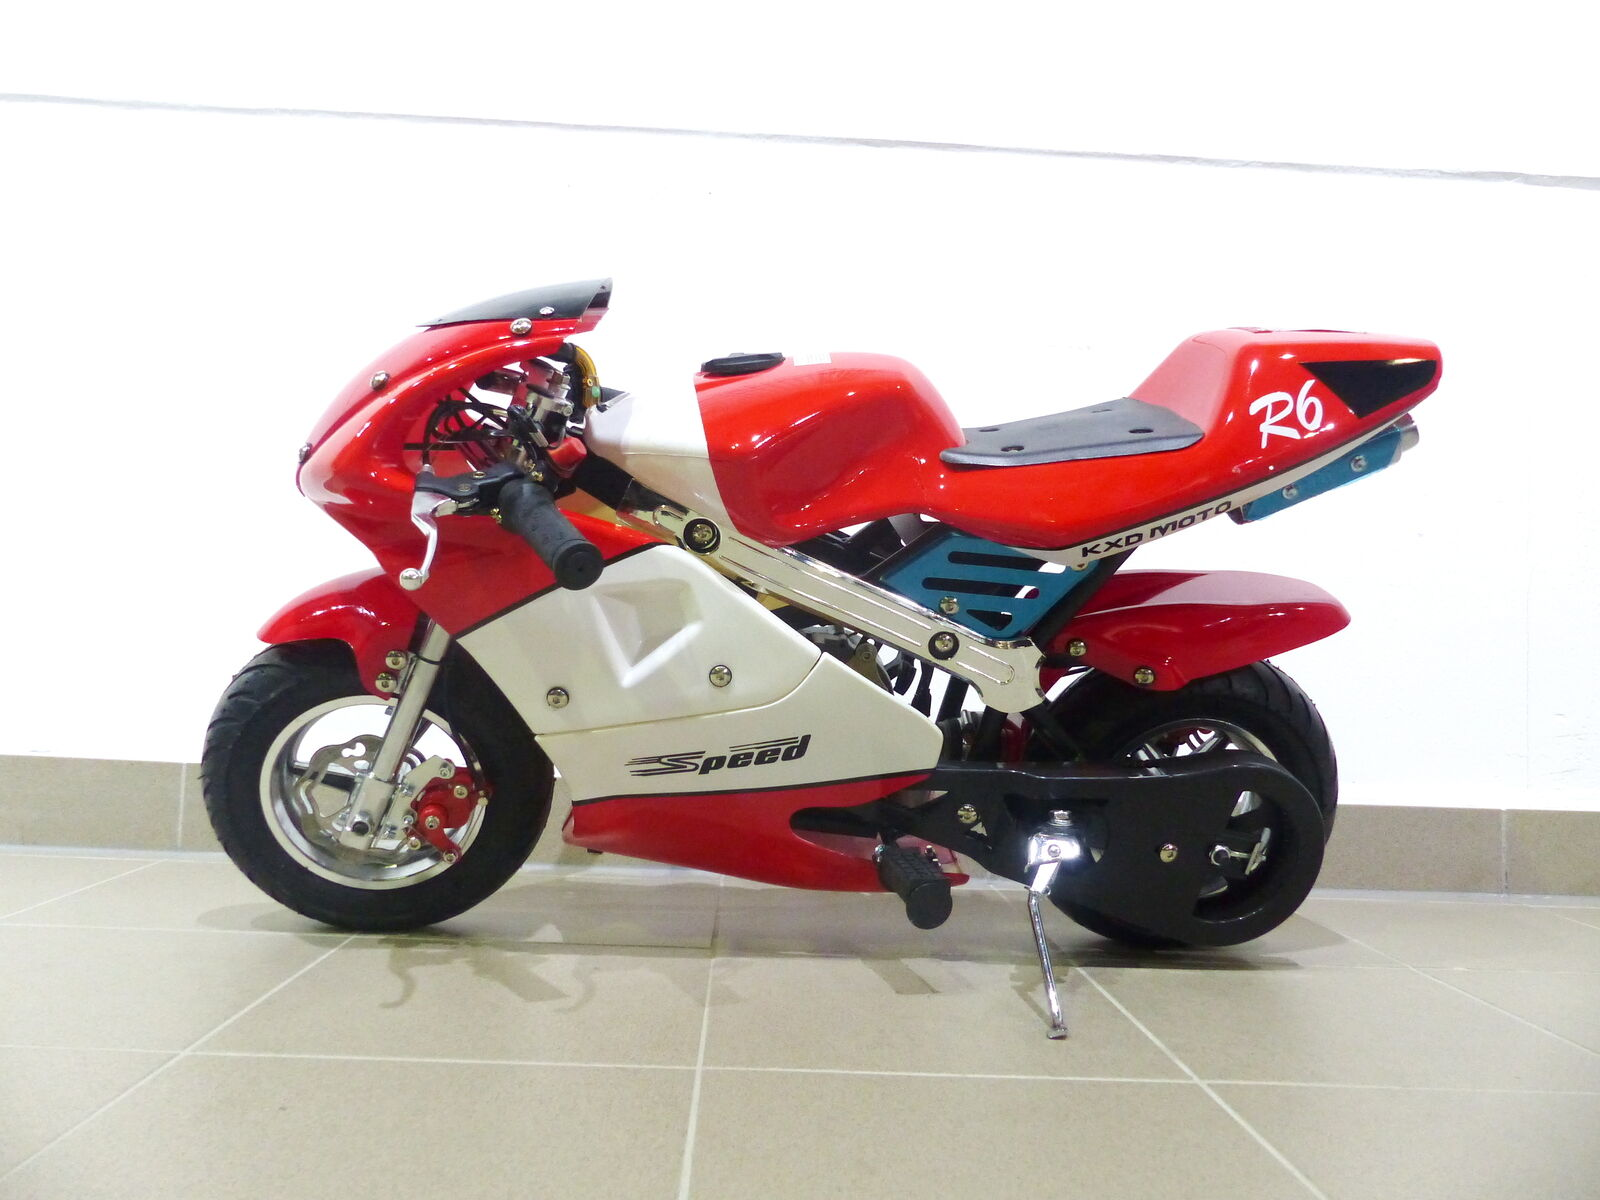 RV-Racing Pocketbike Dirtbike Pocket Rennbike Minibike 49ccm Kindermotorrad Rot